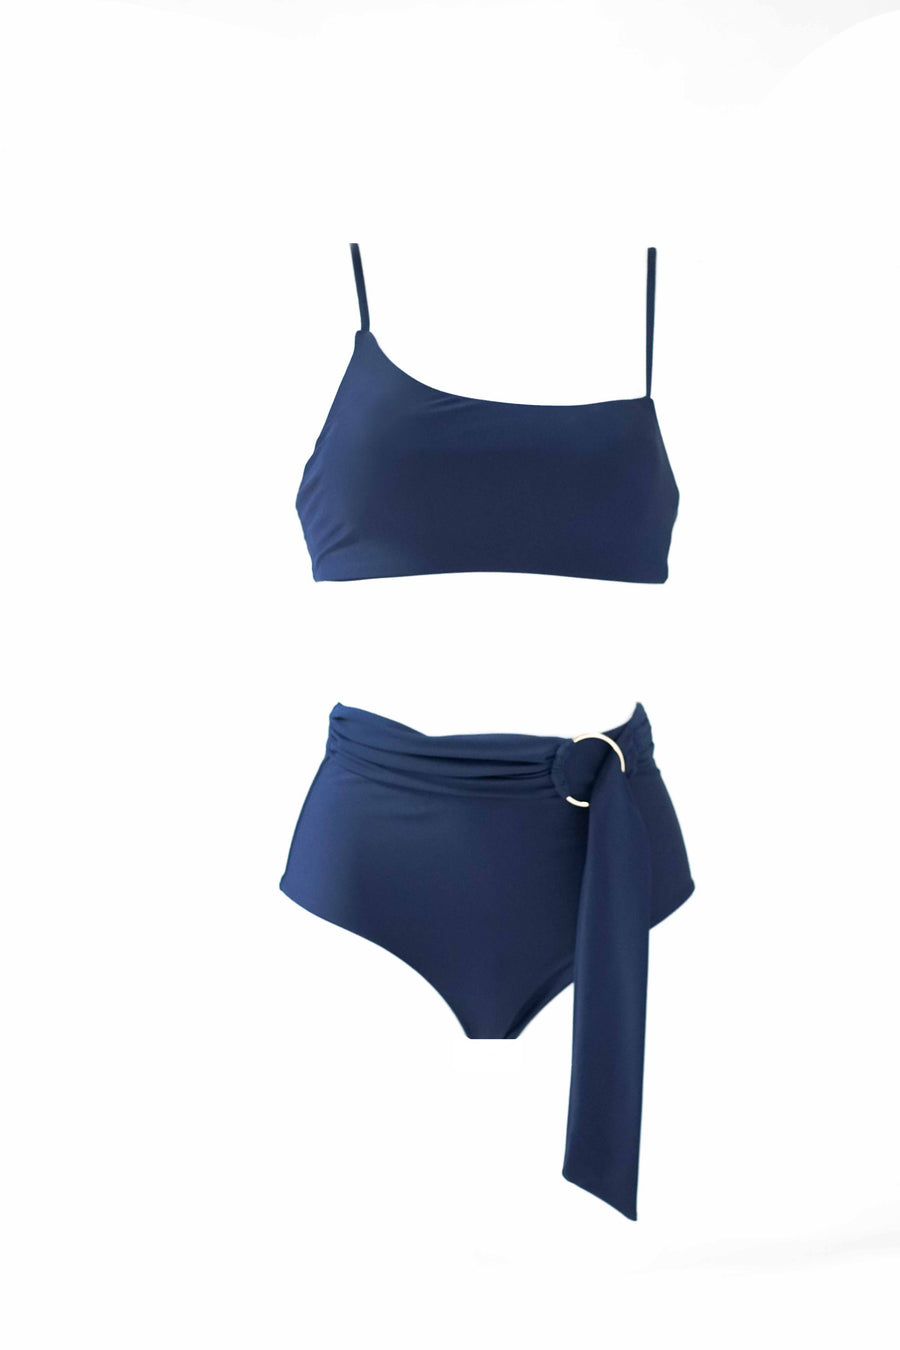 Asymmetrical Bandeau Top - Midnight Blue